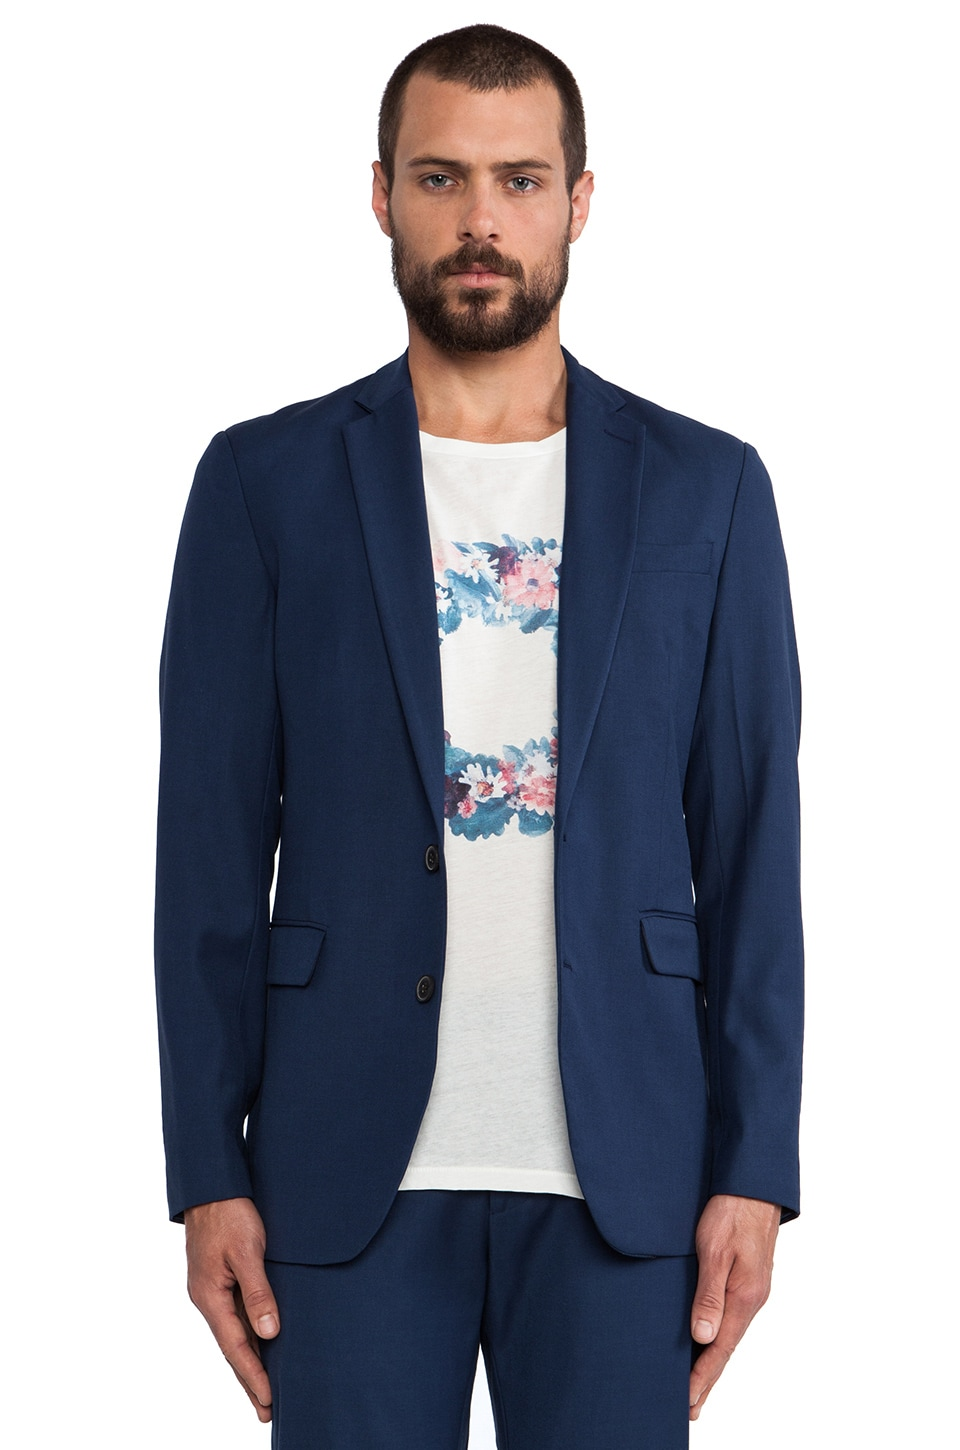 Shades of Grey by Micah Cohen 2 Button Blazer in Classic Blue Wool